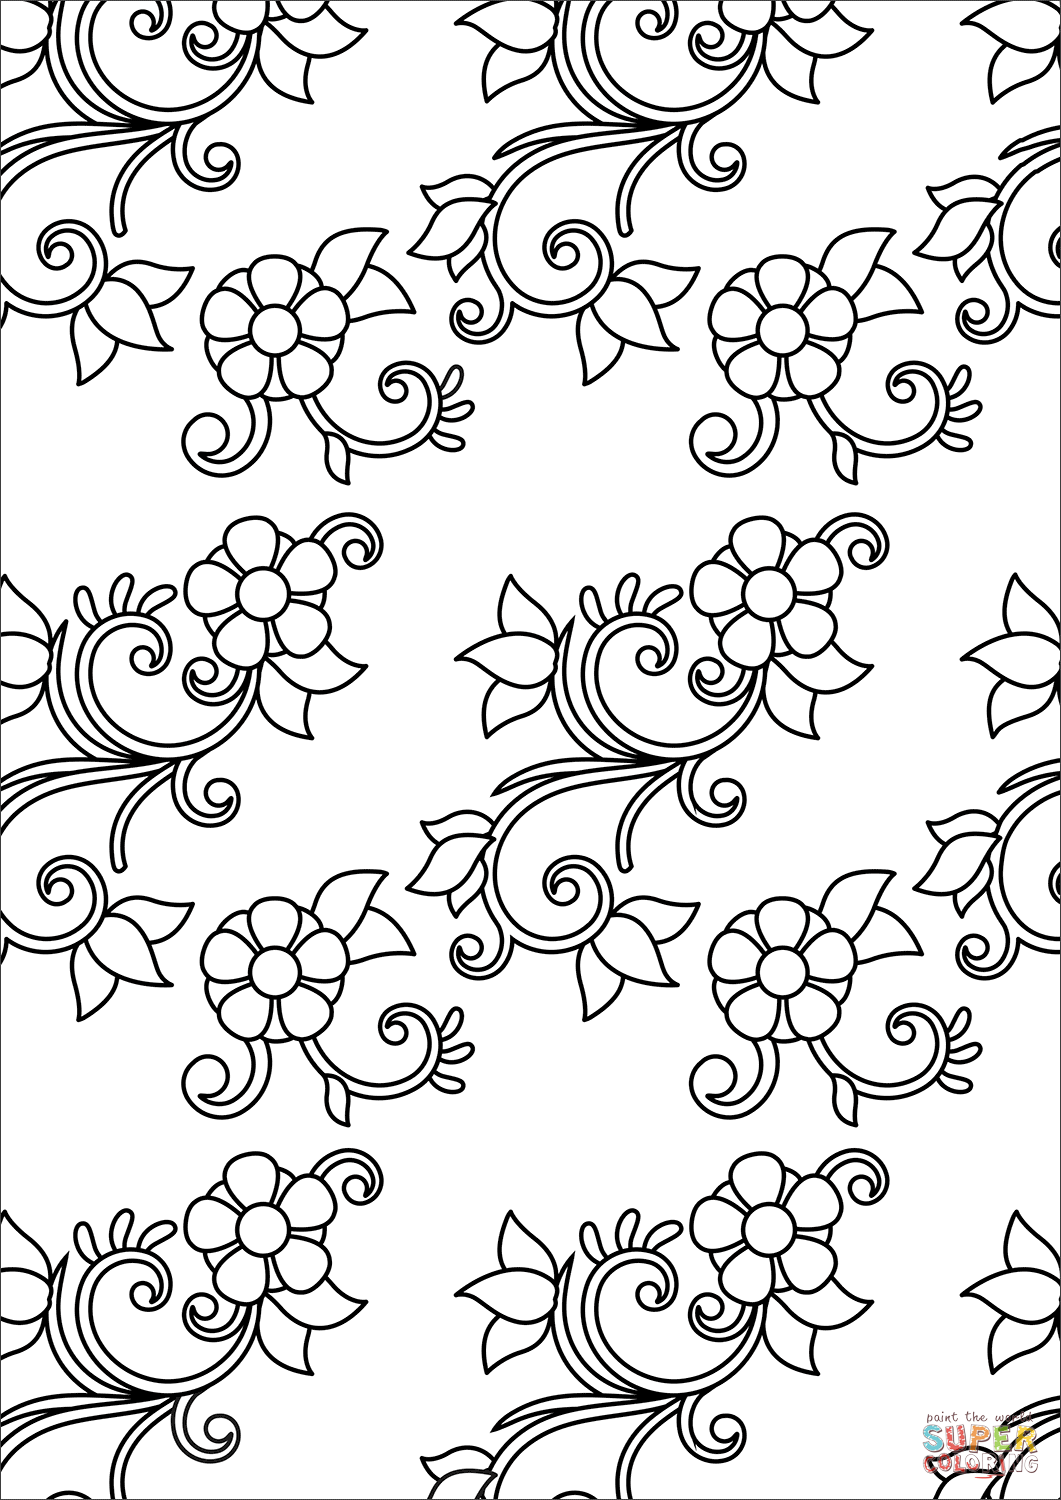 free coloring patterns 20 attractive coloring pages for adults we need fun free coloring patterns